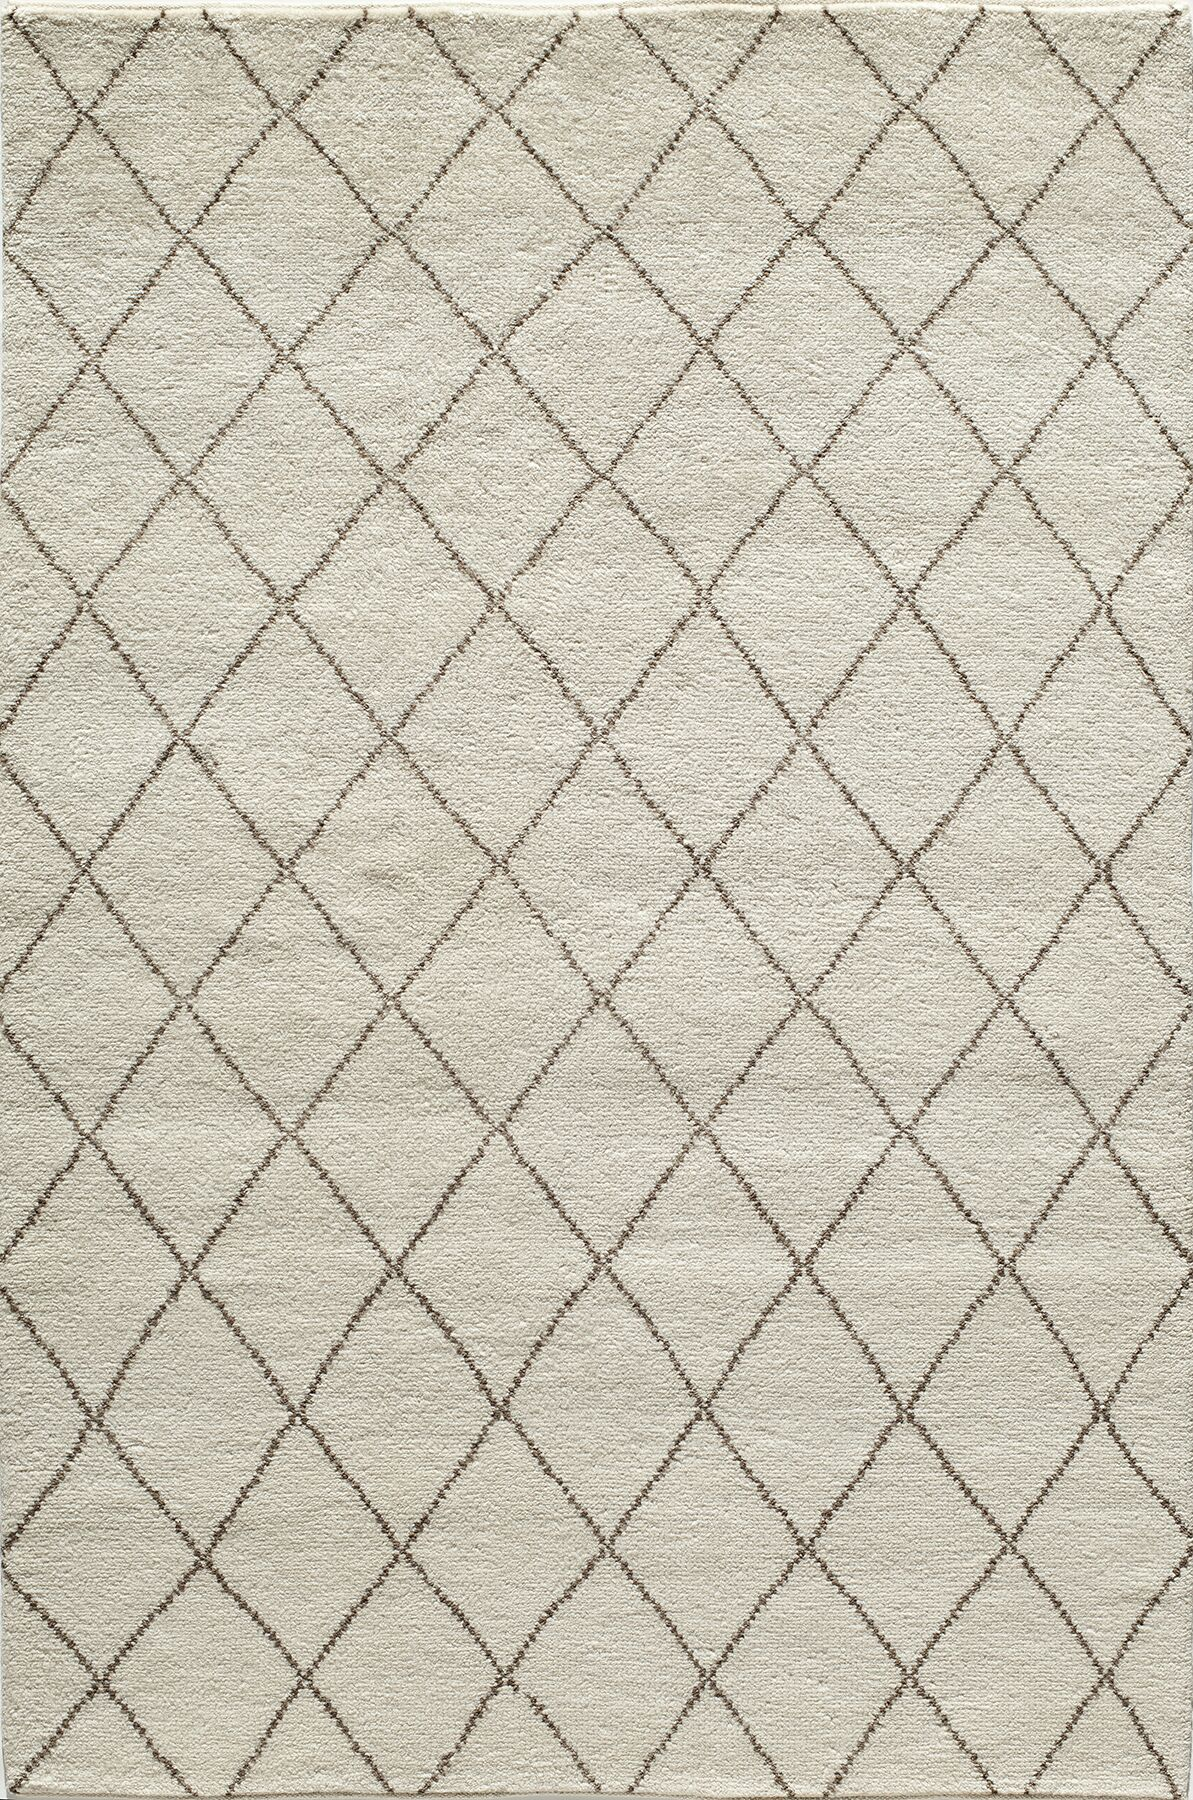 Brice Hand-Knotted Ivory Area Rug Rug Size: Runner 2'3